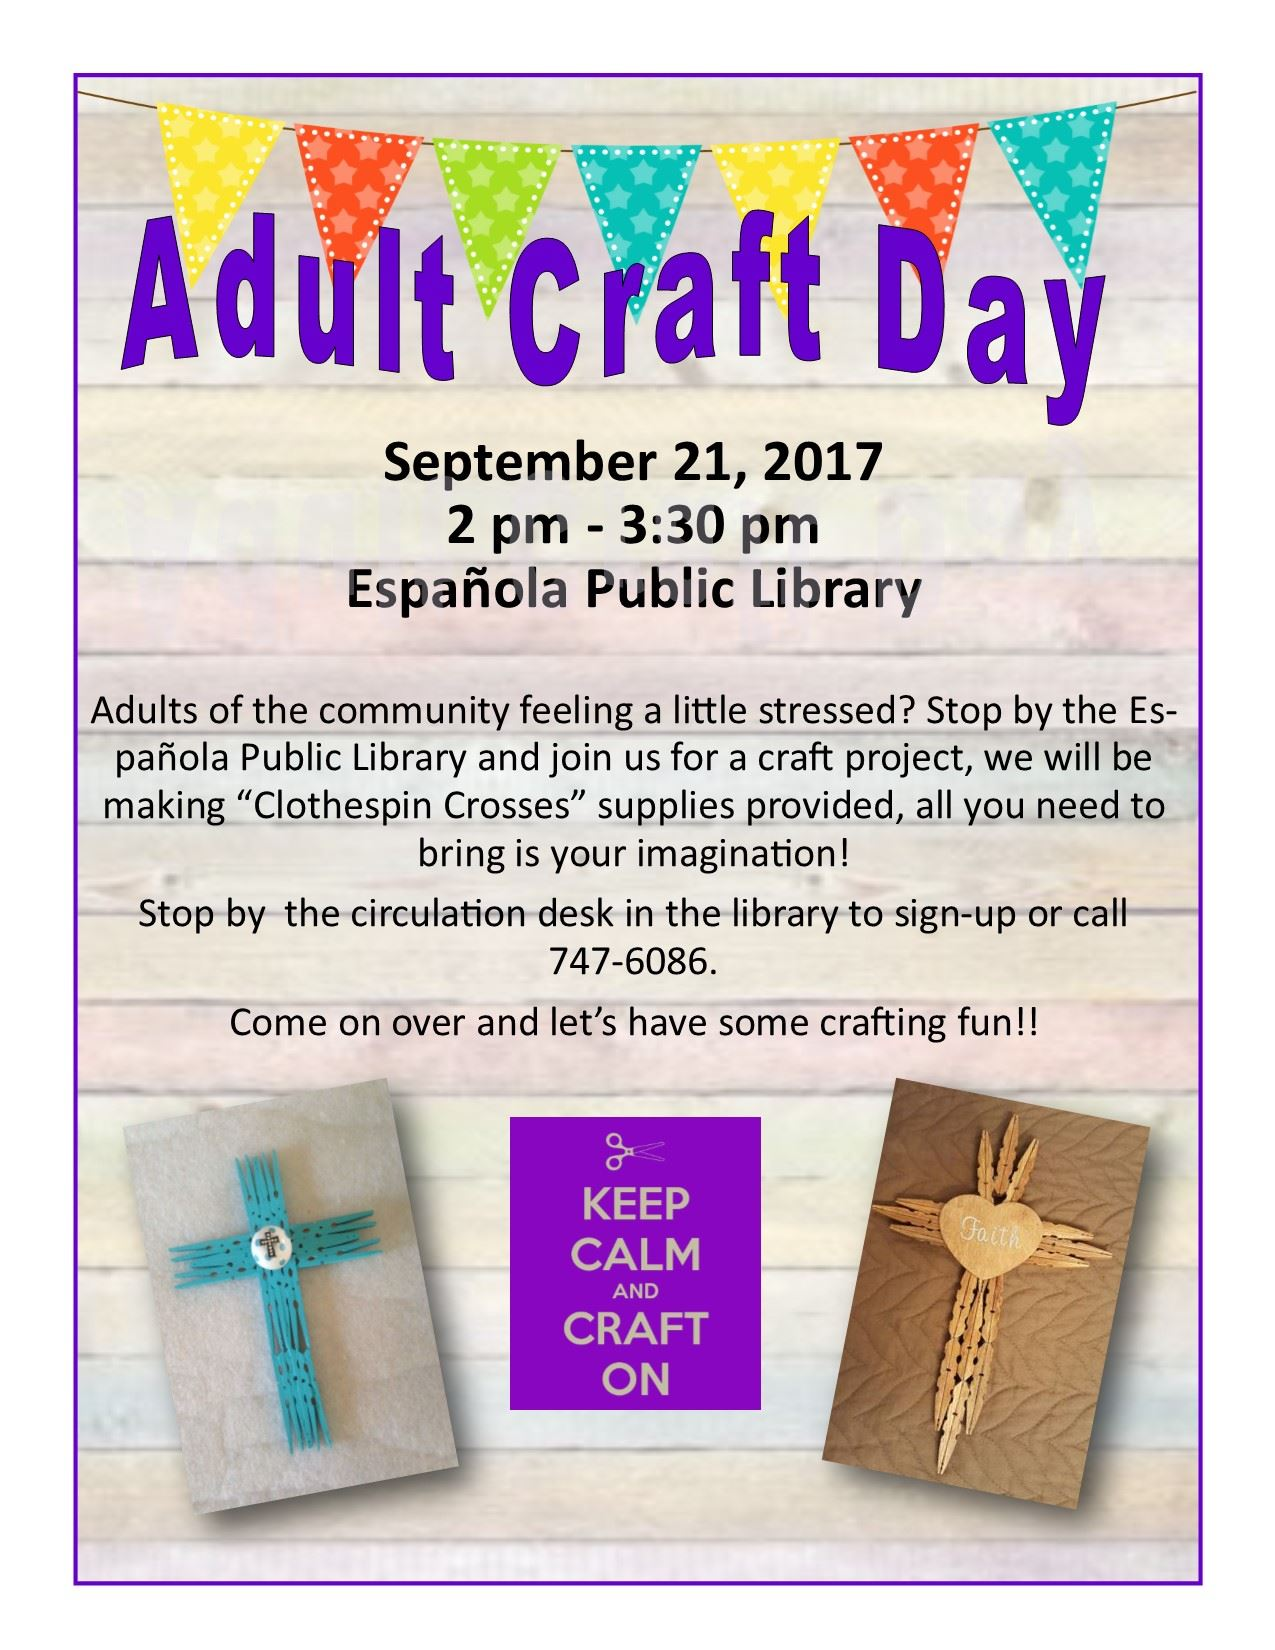 Adult Craft Day